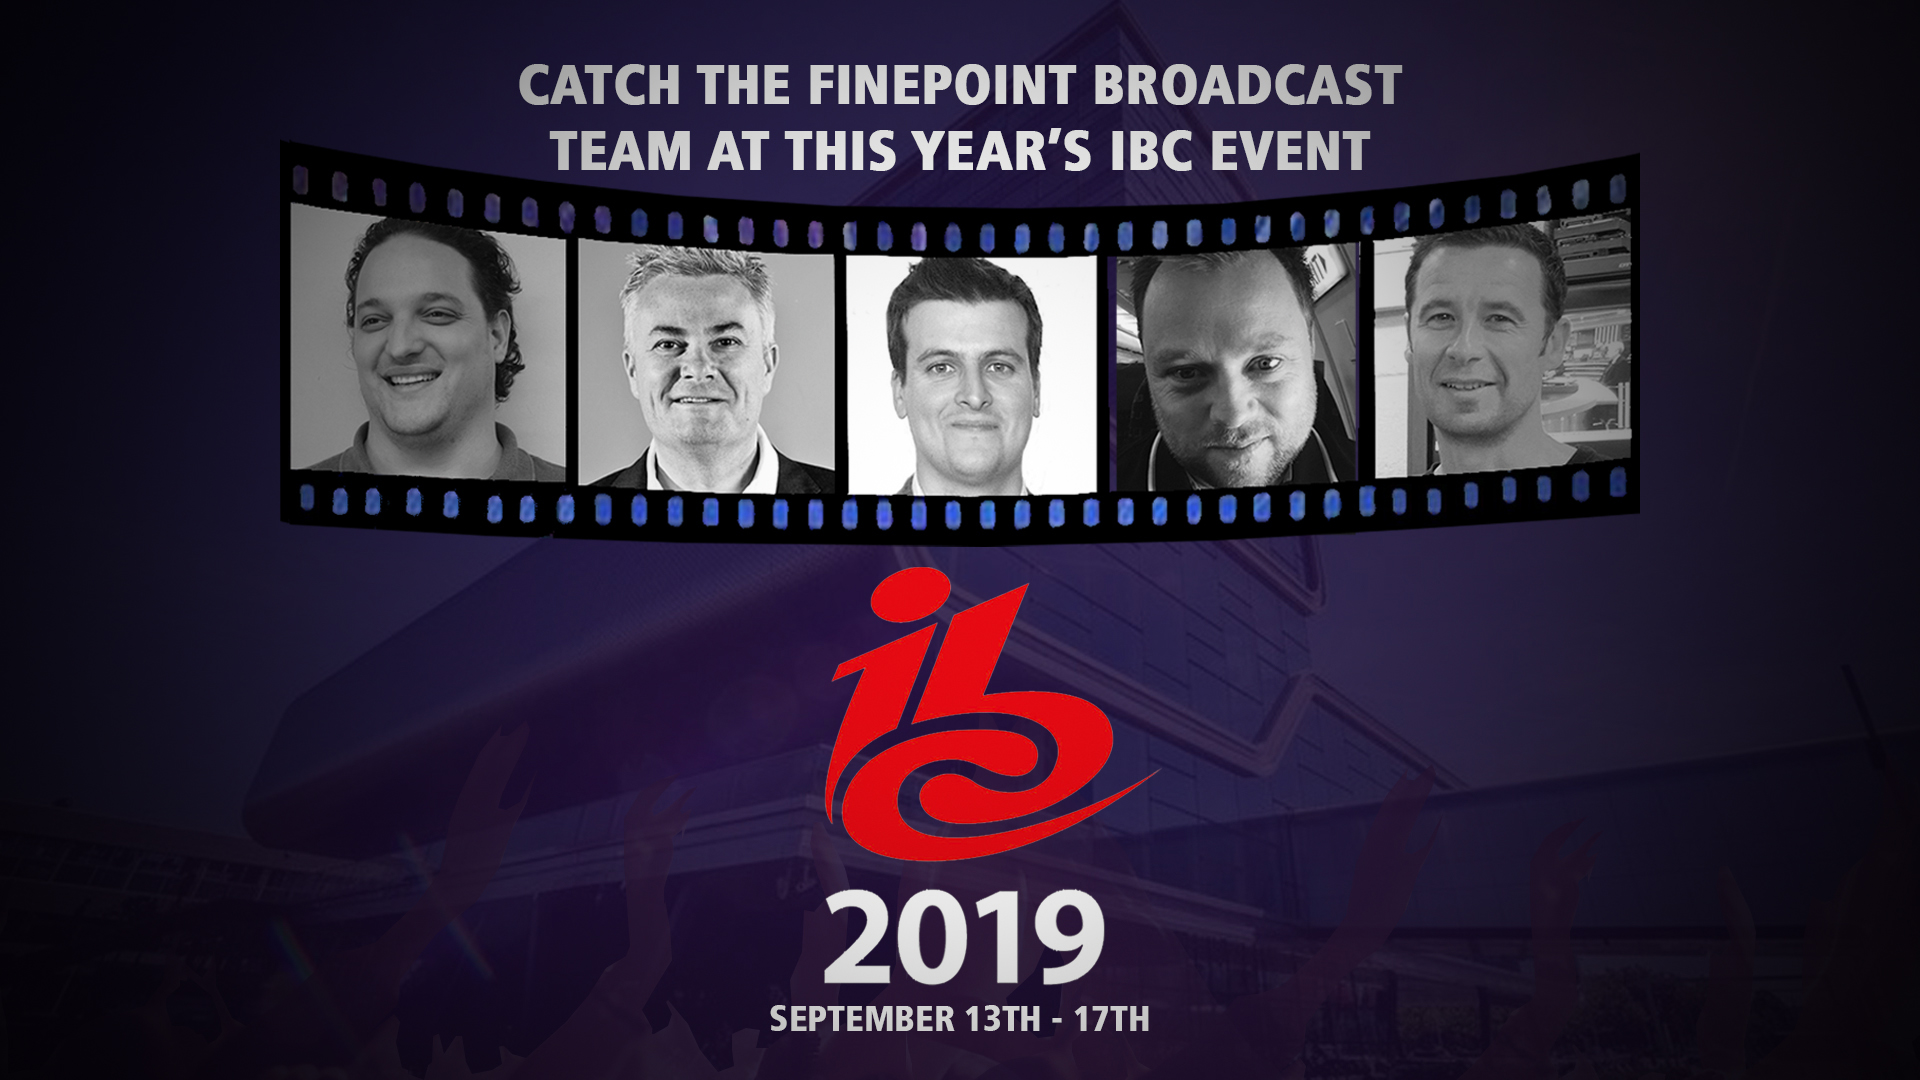 Finepoint Broadcast Team Gears for IBC 2019